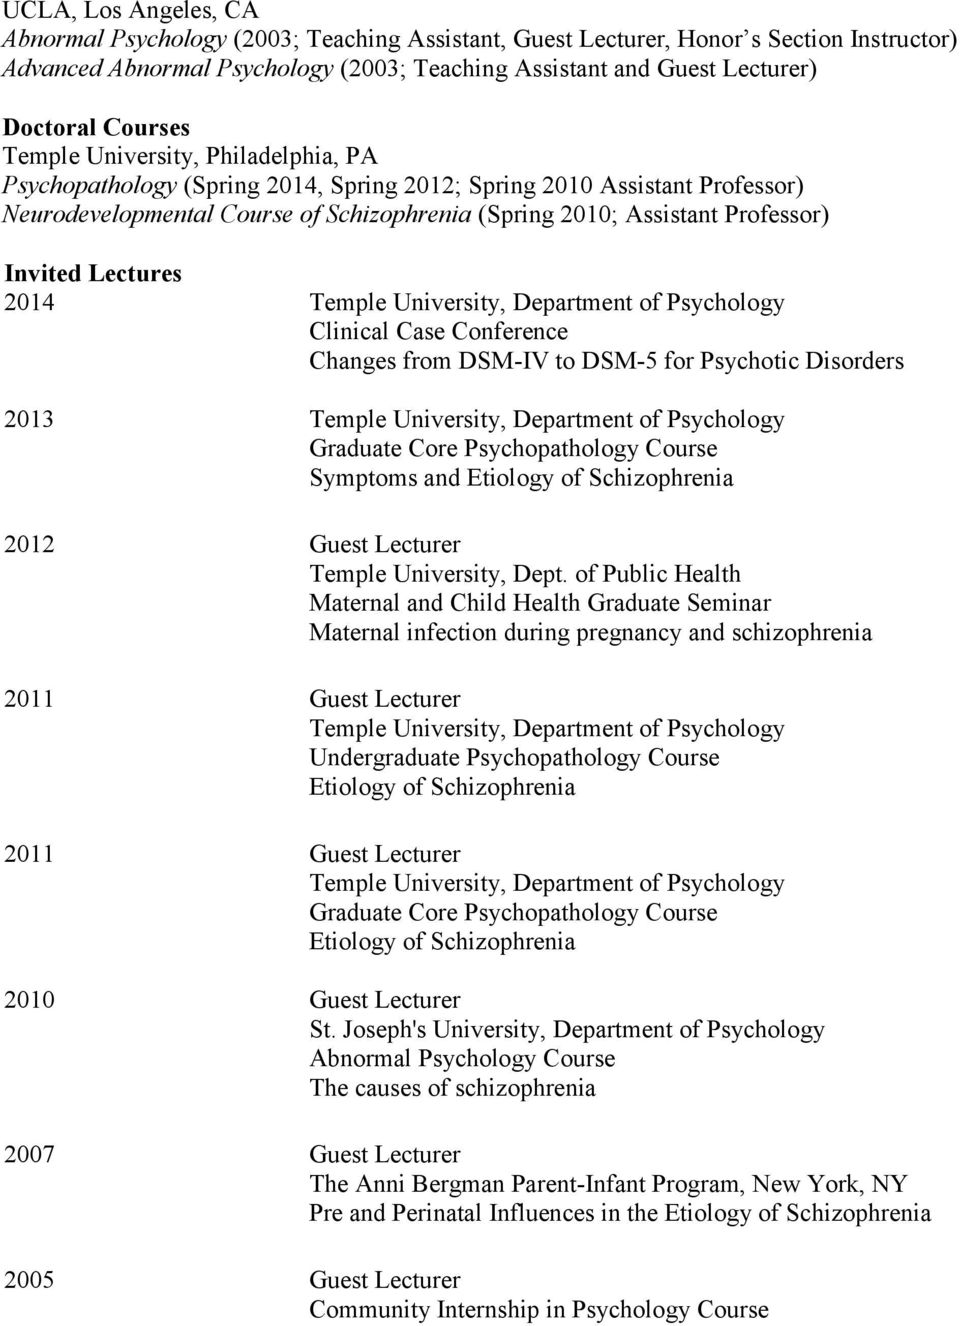 2014 Temple University, Department of Psychology Clinical Case Conference Changes from DSM-IV to DSM-5 for Psychotic Disorders 2013 Temple University, Department of Psychology Graduate Core